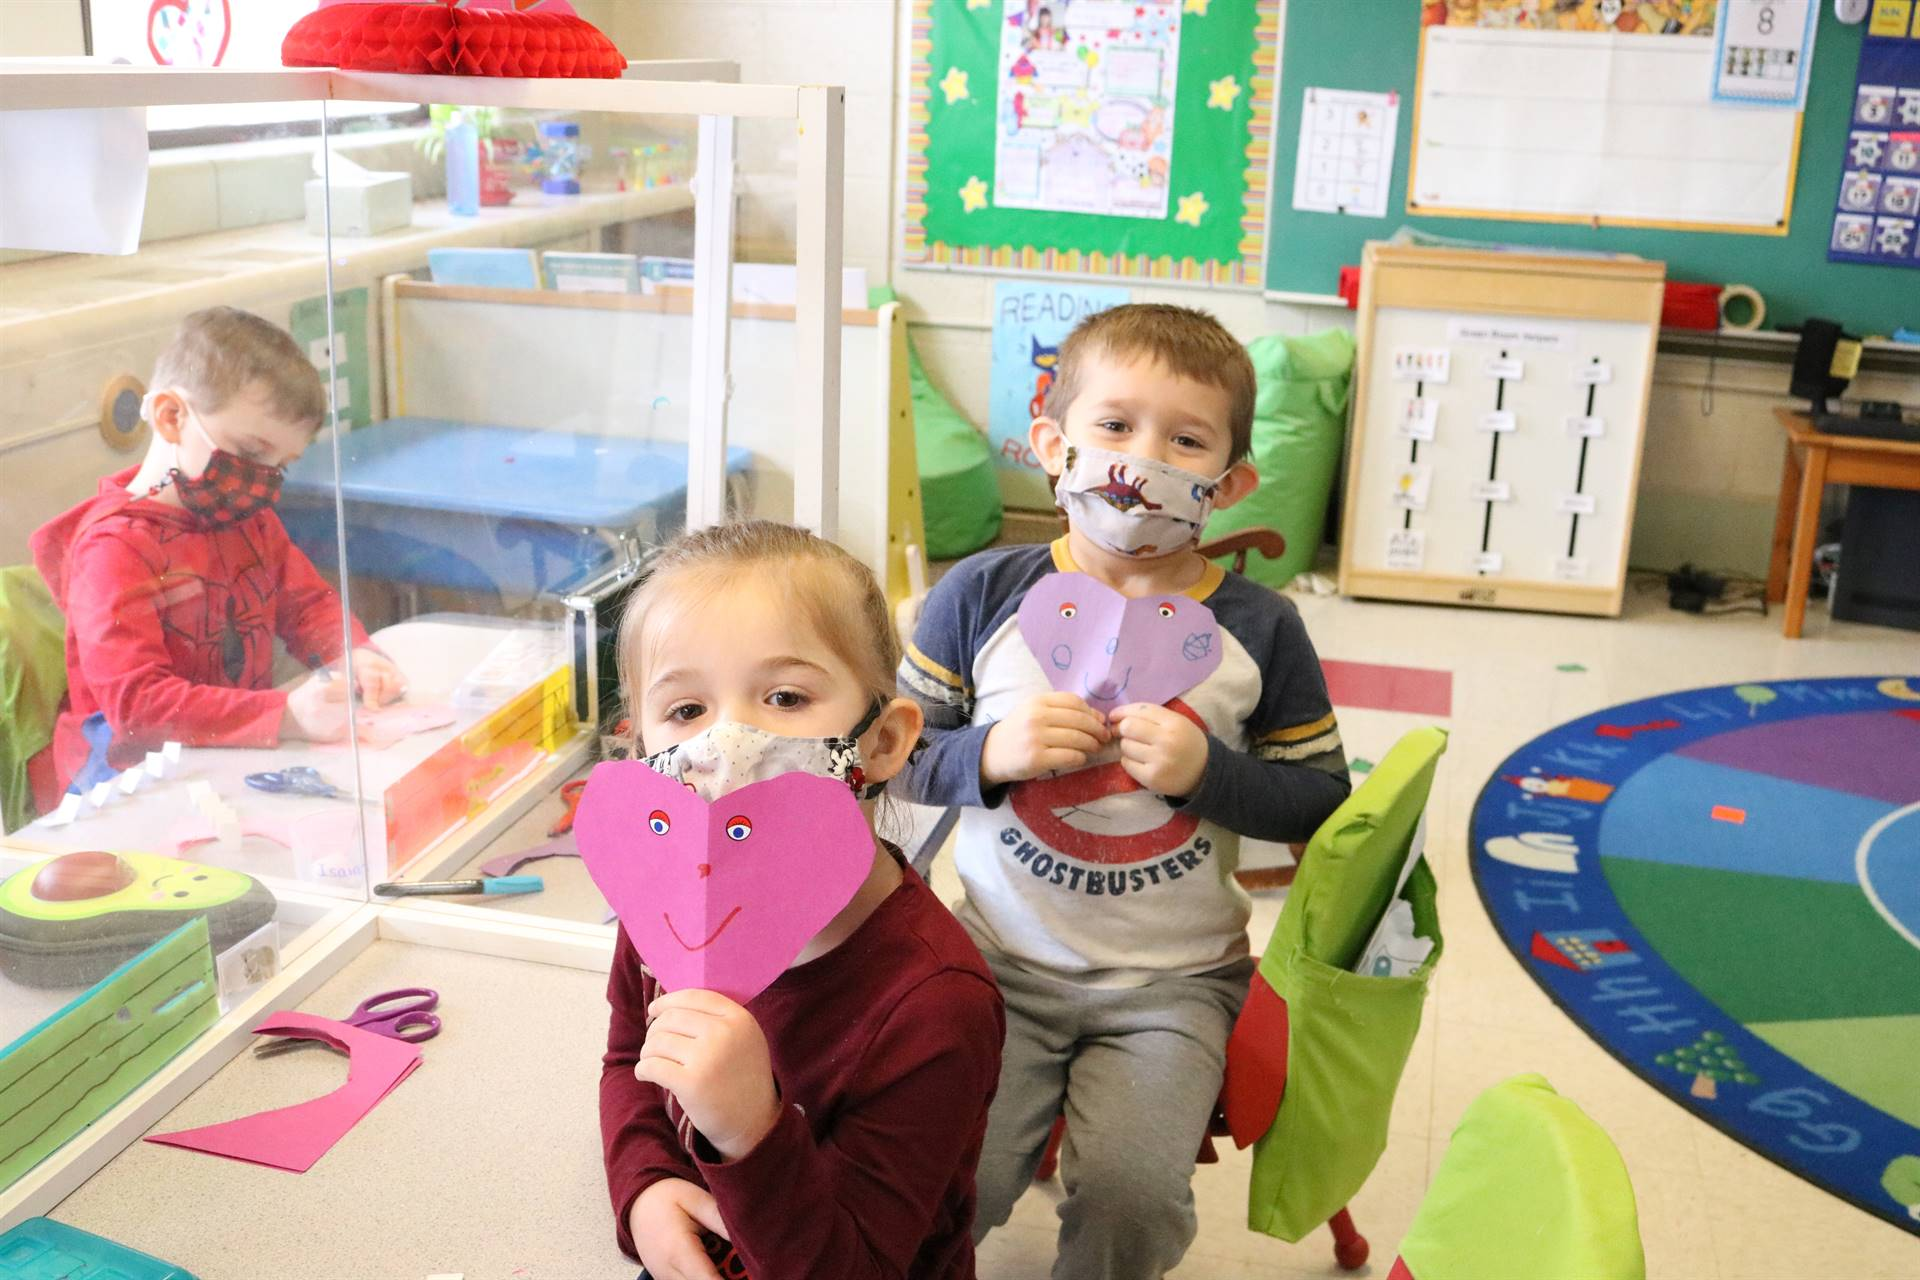 girl and boy holding heart papers